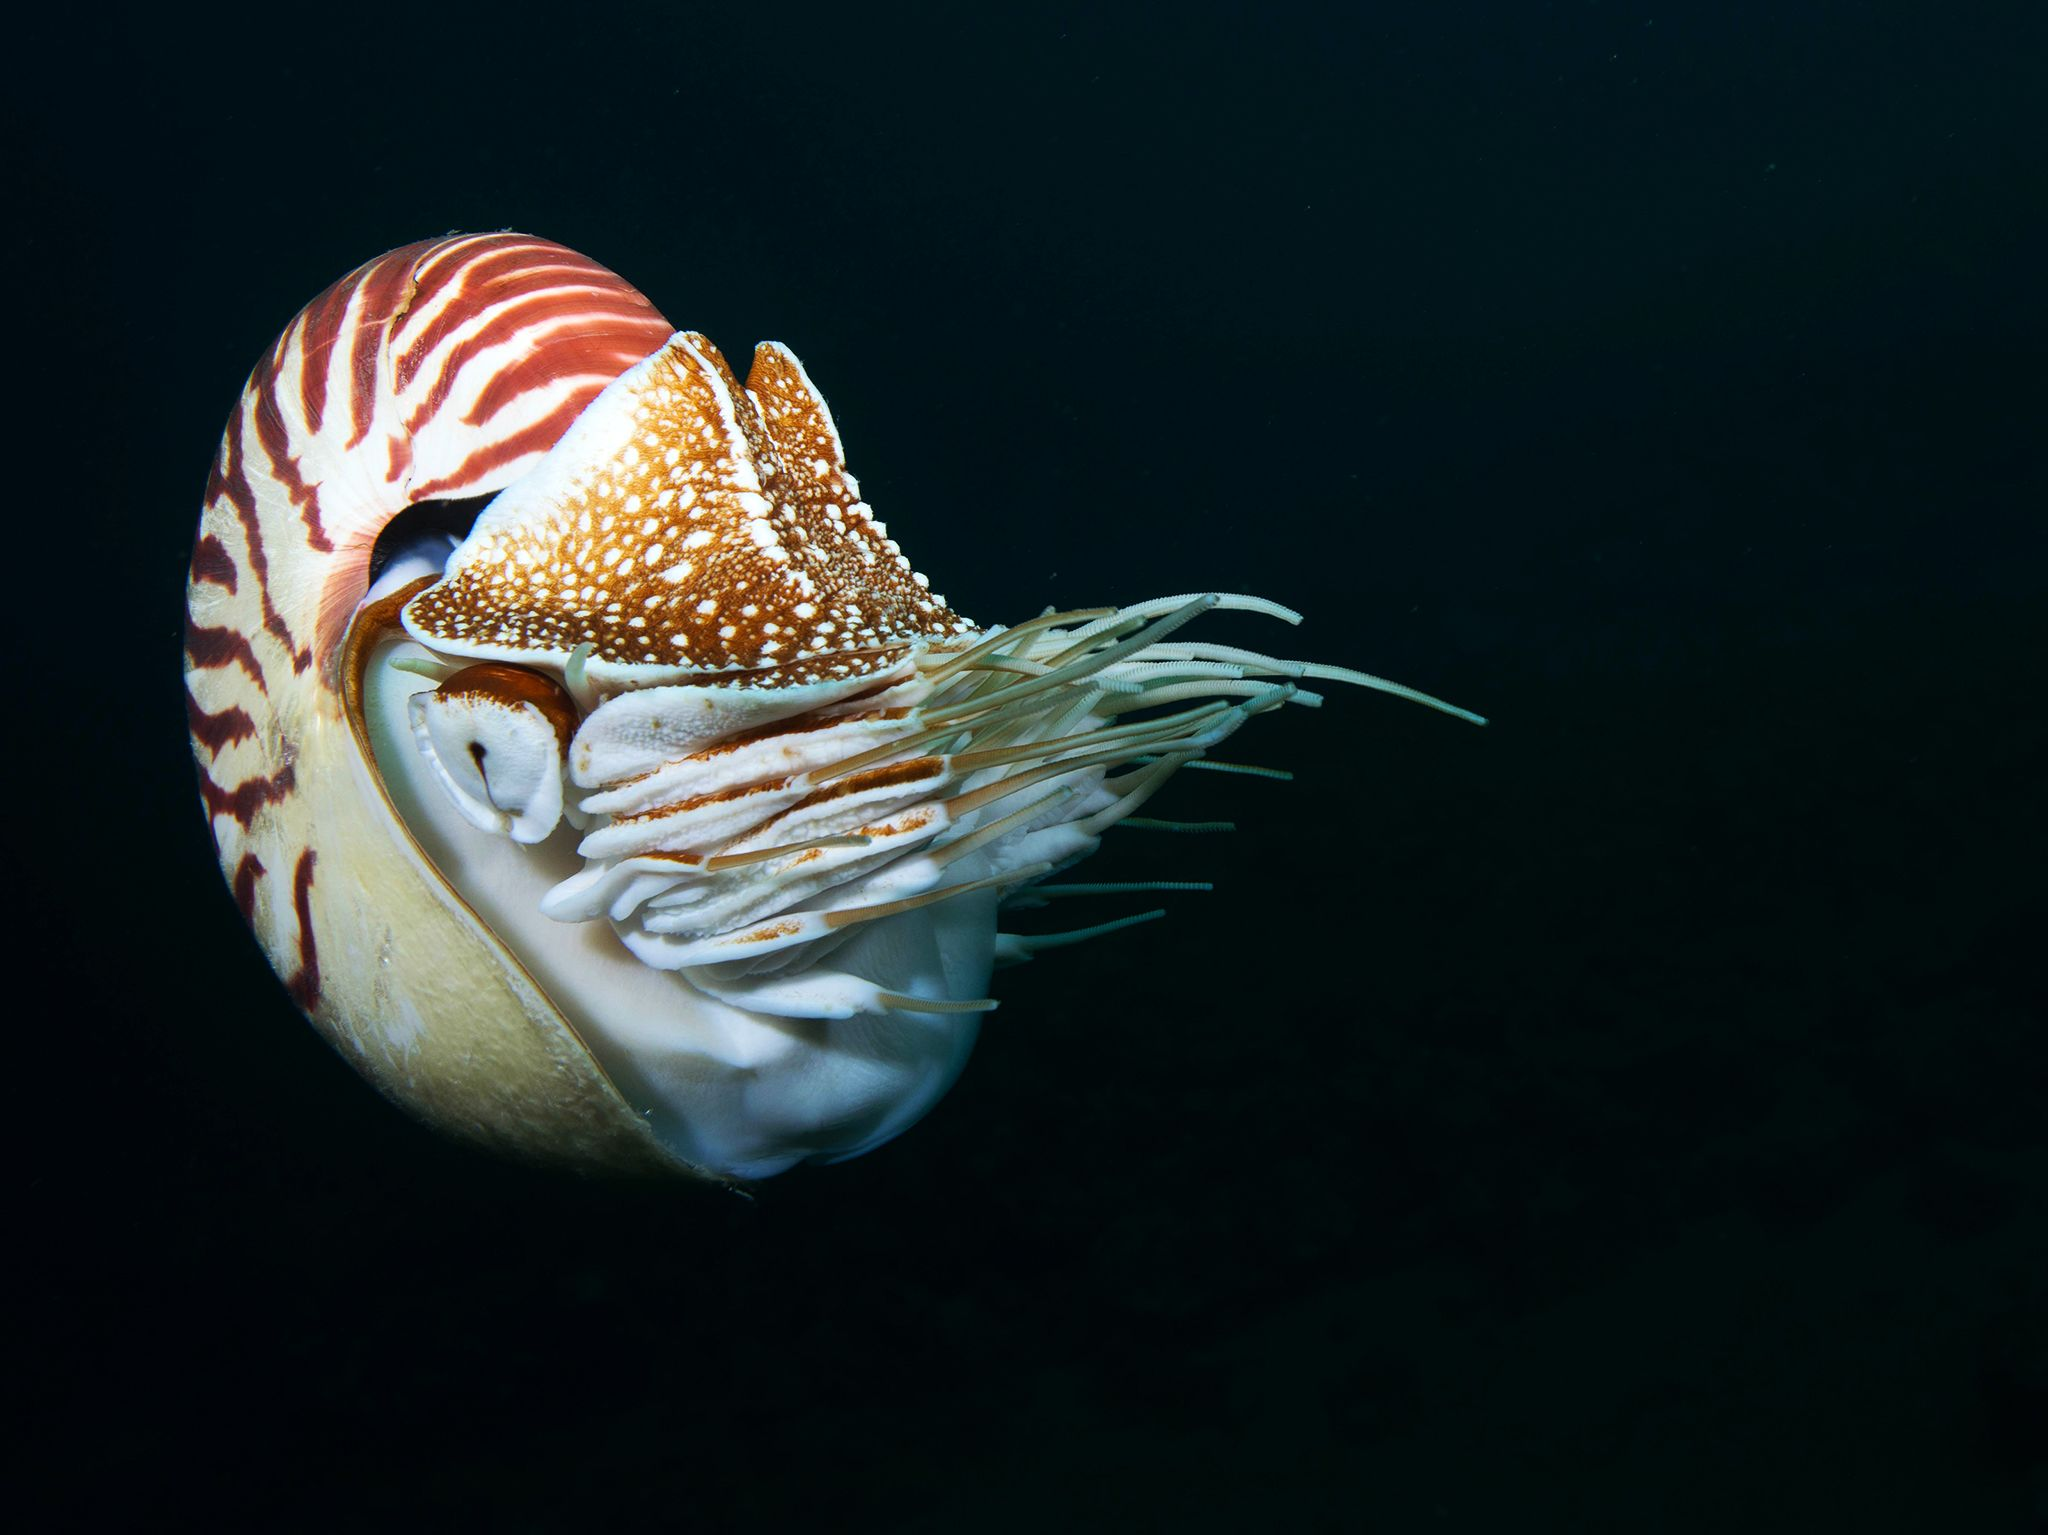 Chambered nautilus. This image is from Untamed Philippines. [Photo of the day - April 2018]